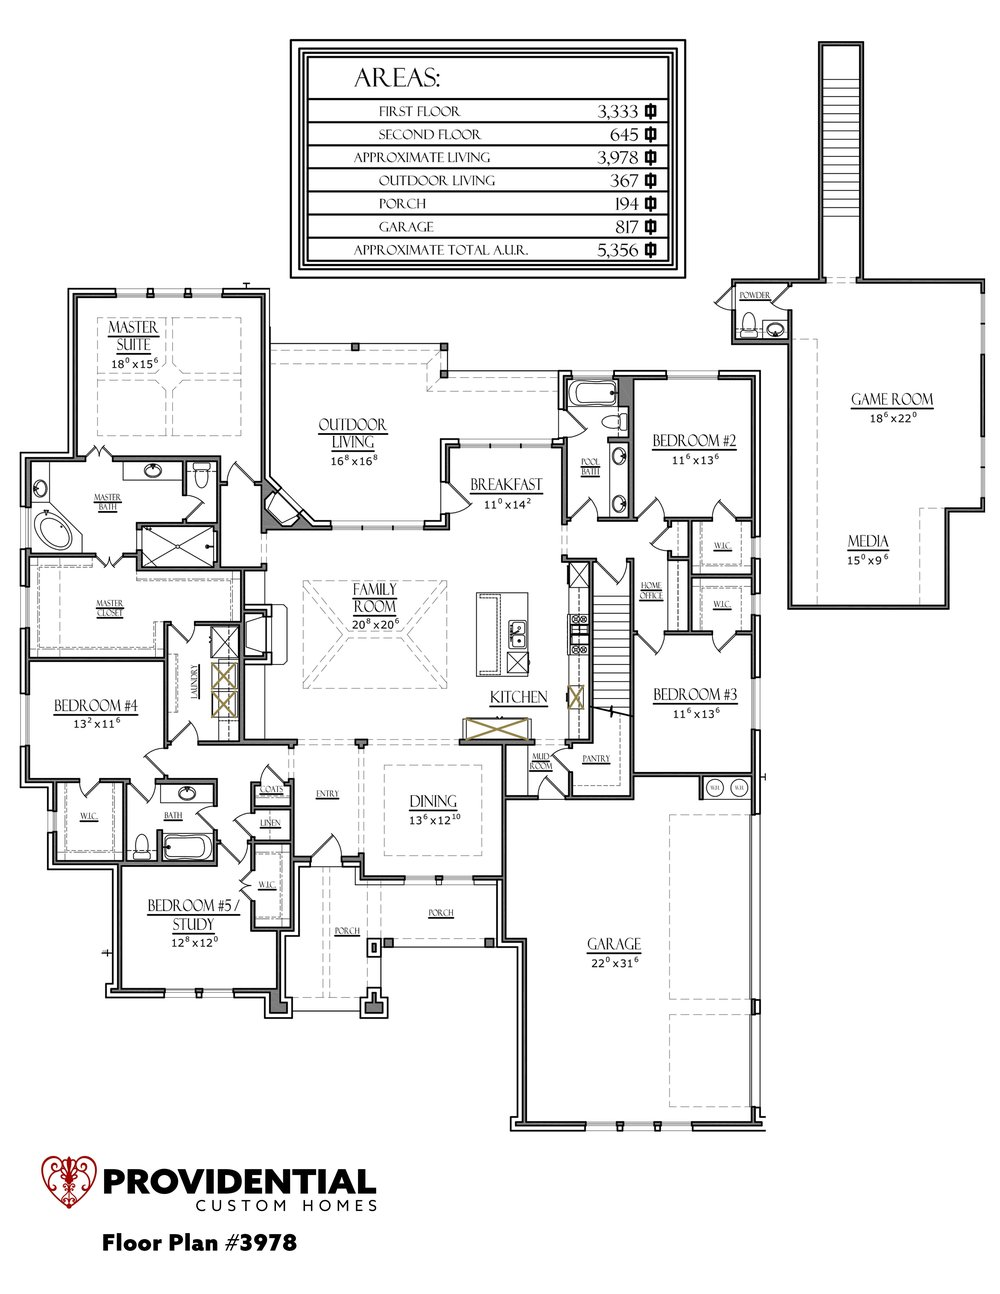 The FLOOR PLAN #3978.jpg